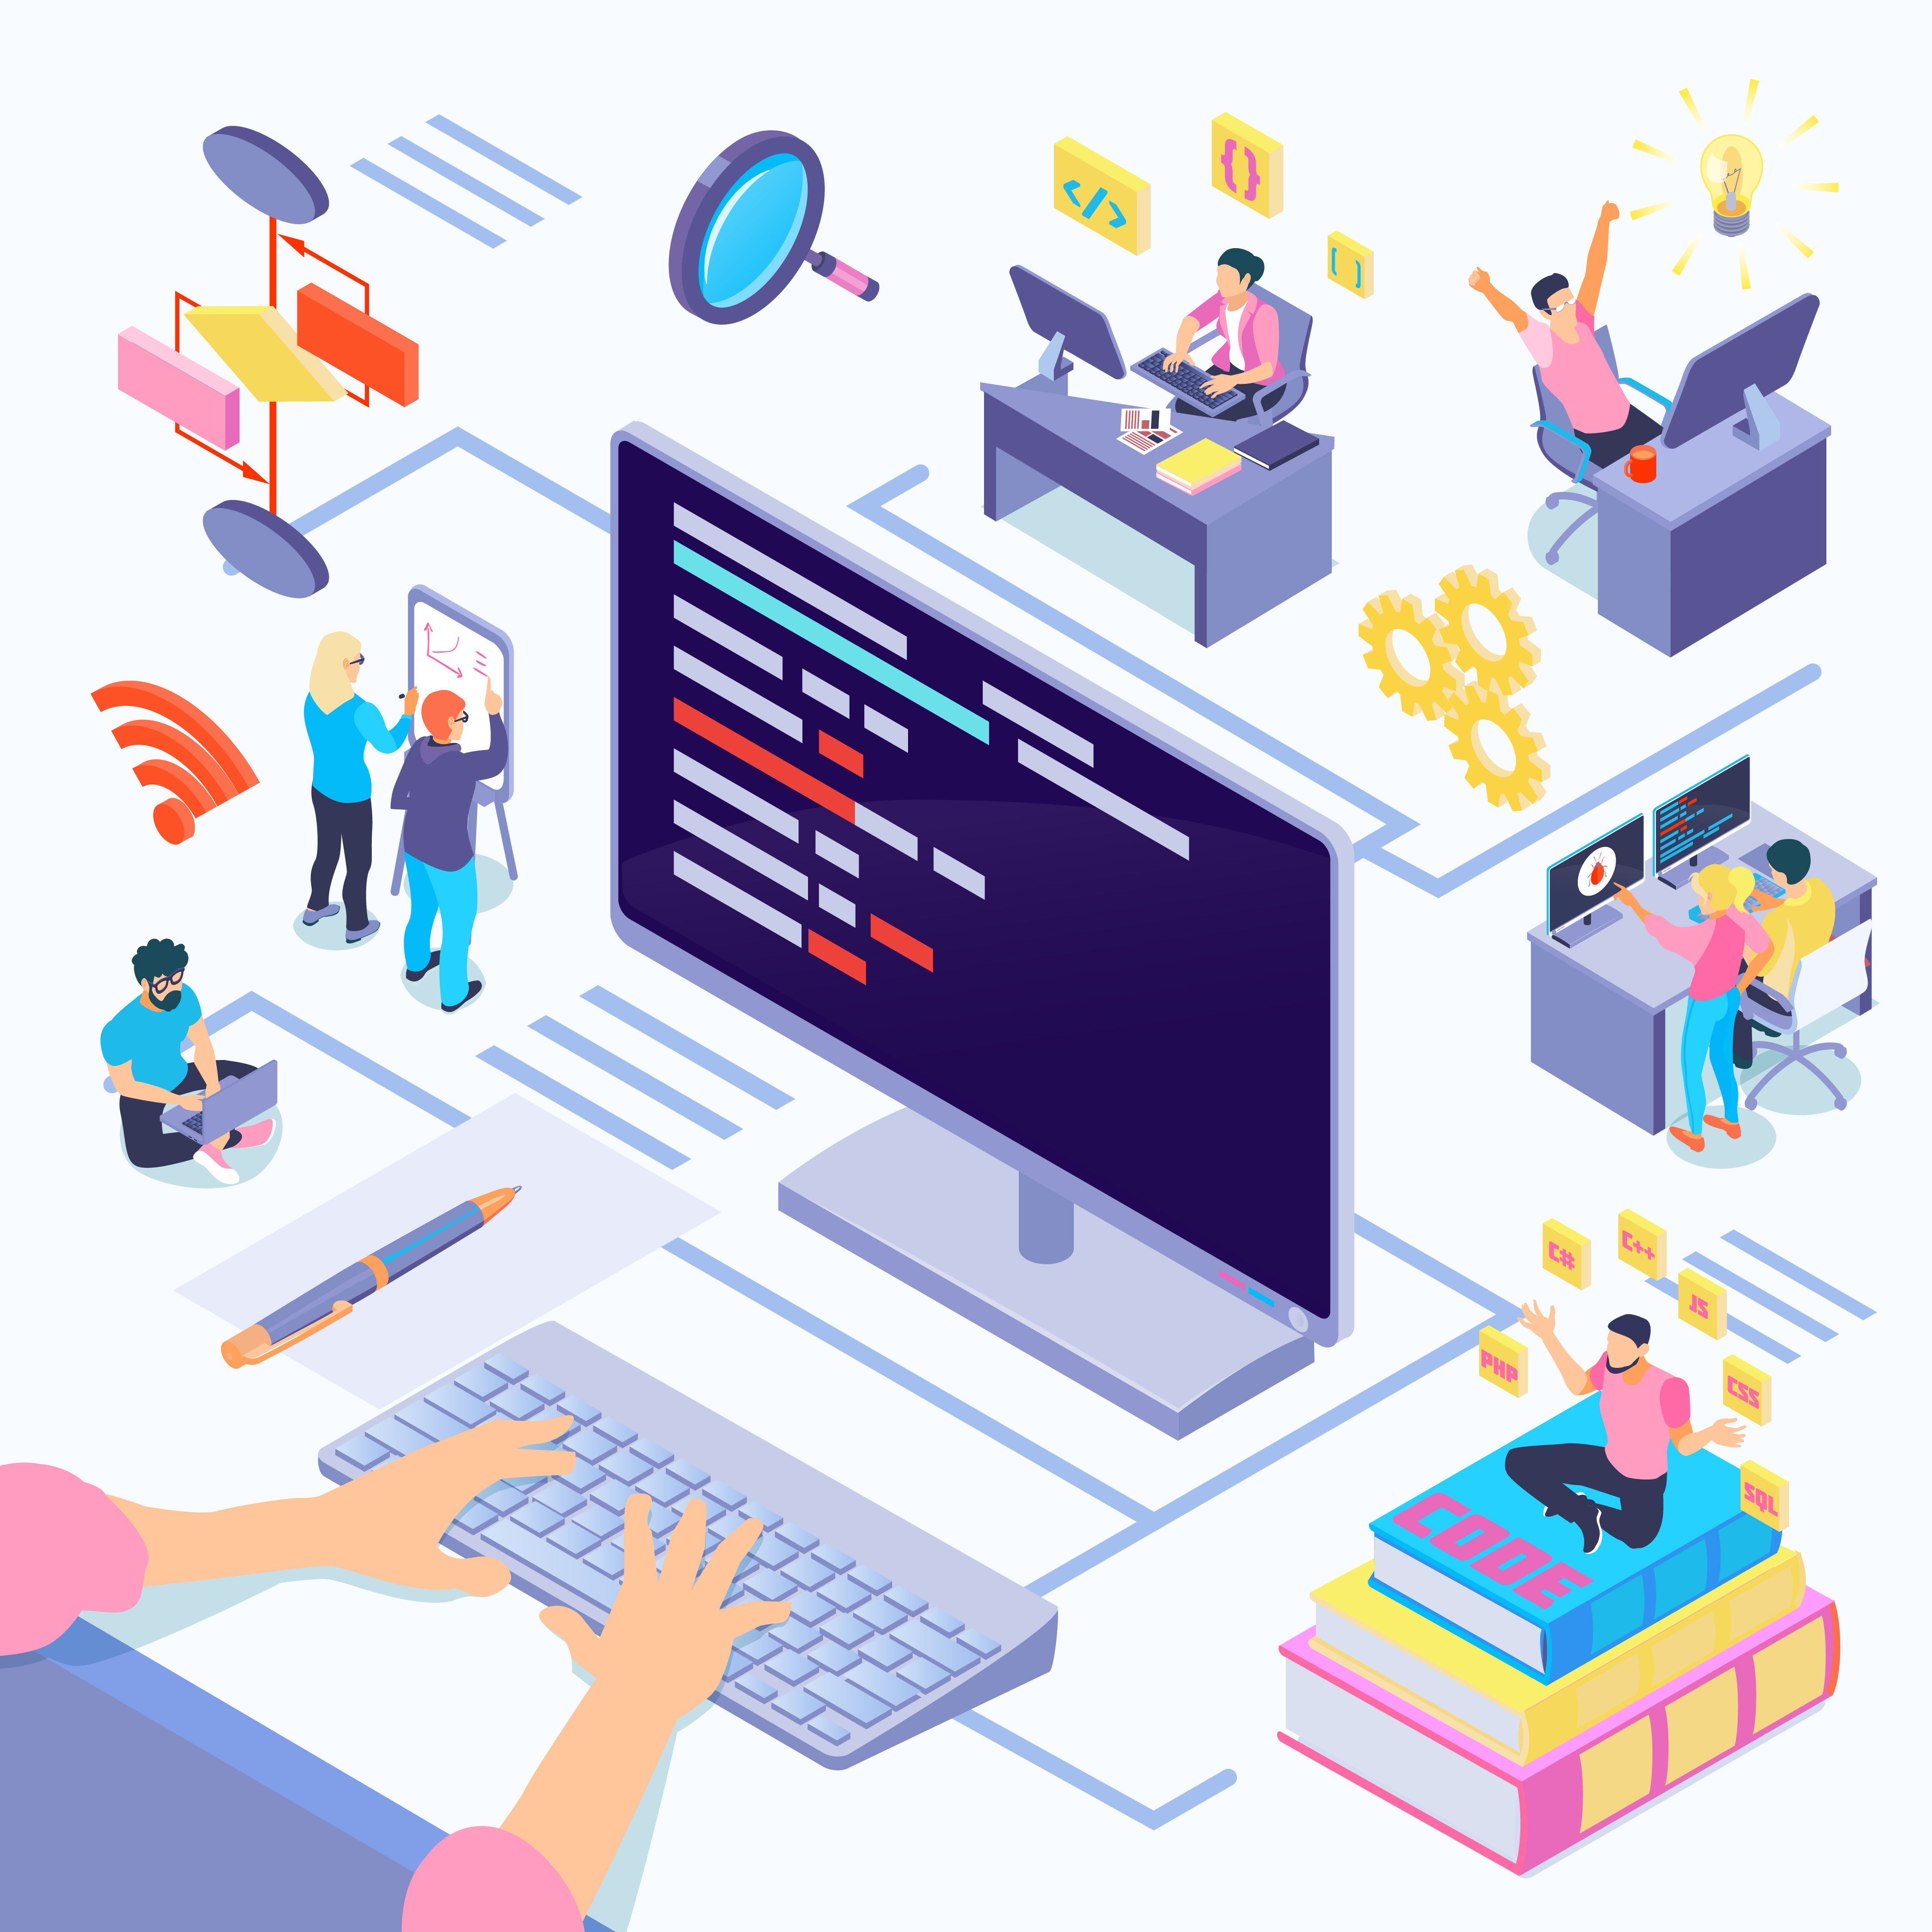 Top 10 Common Types of Business Software Software Developer Programmer Working on Business Software Codes